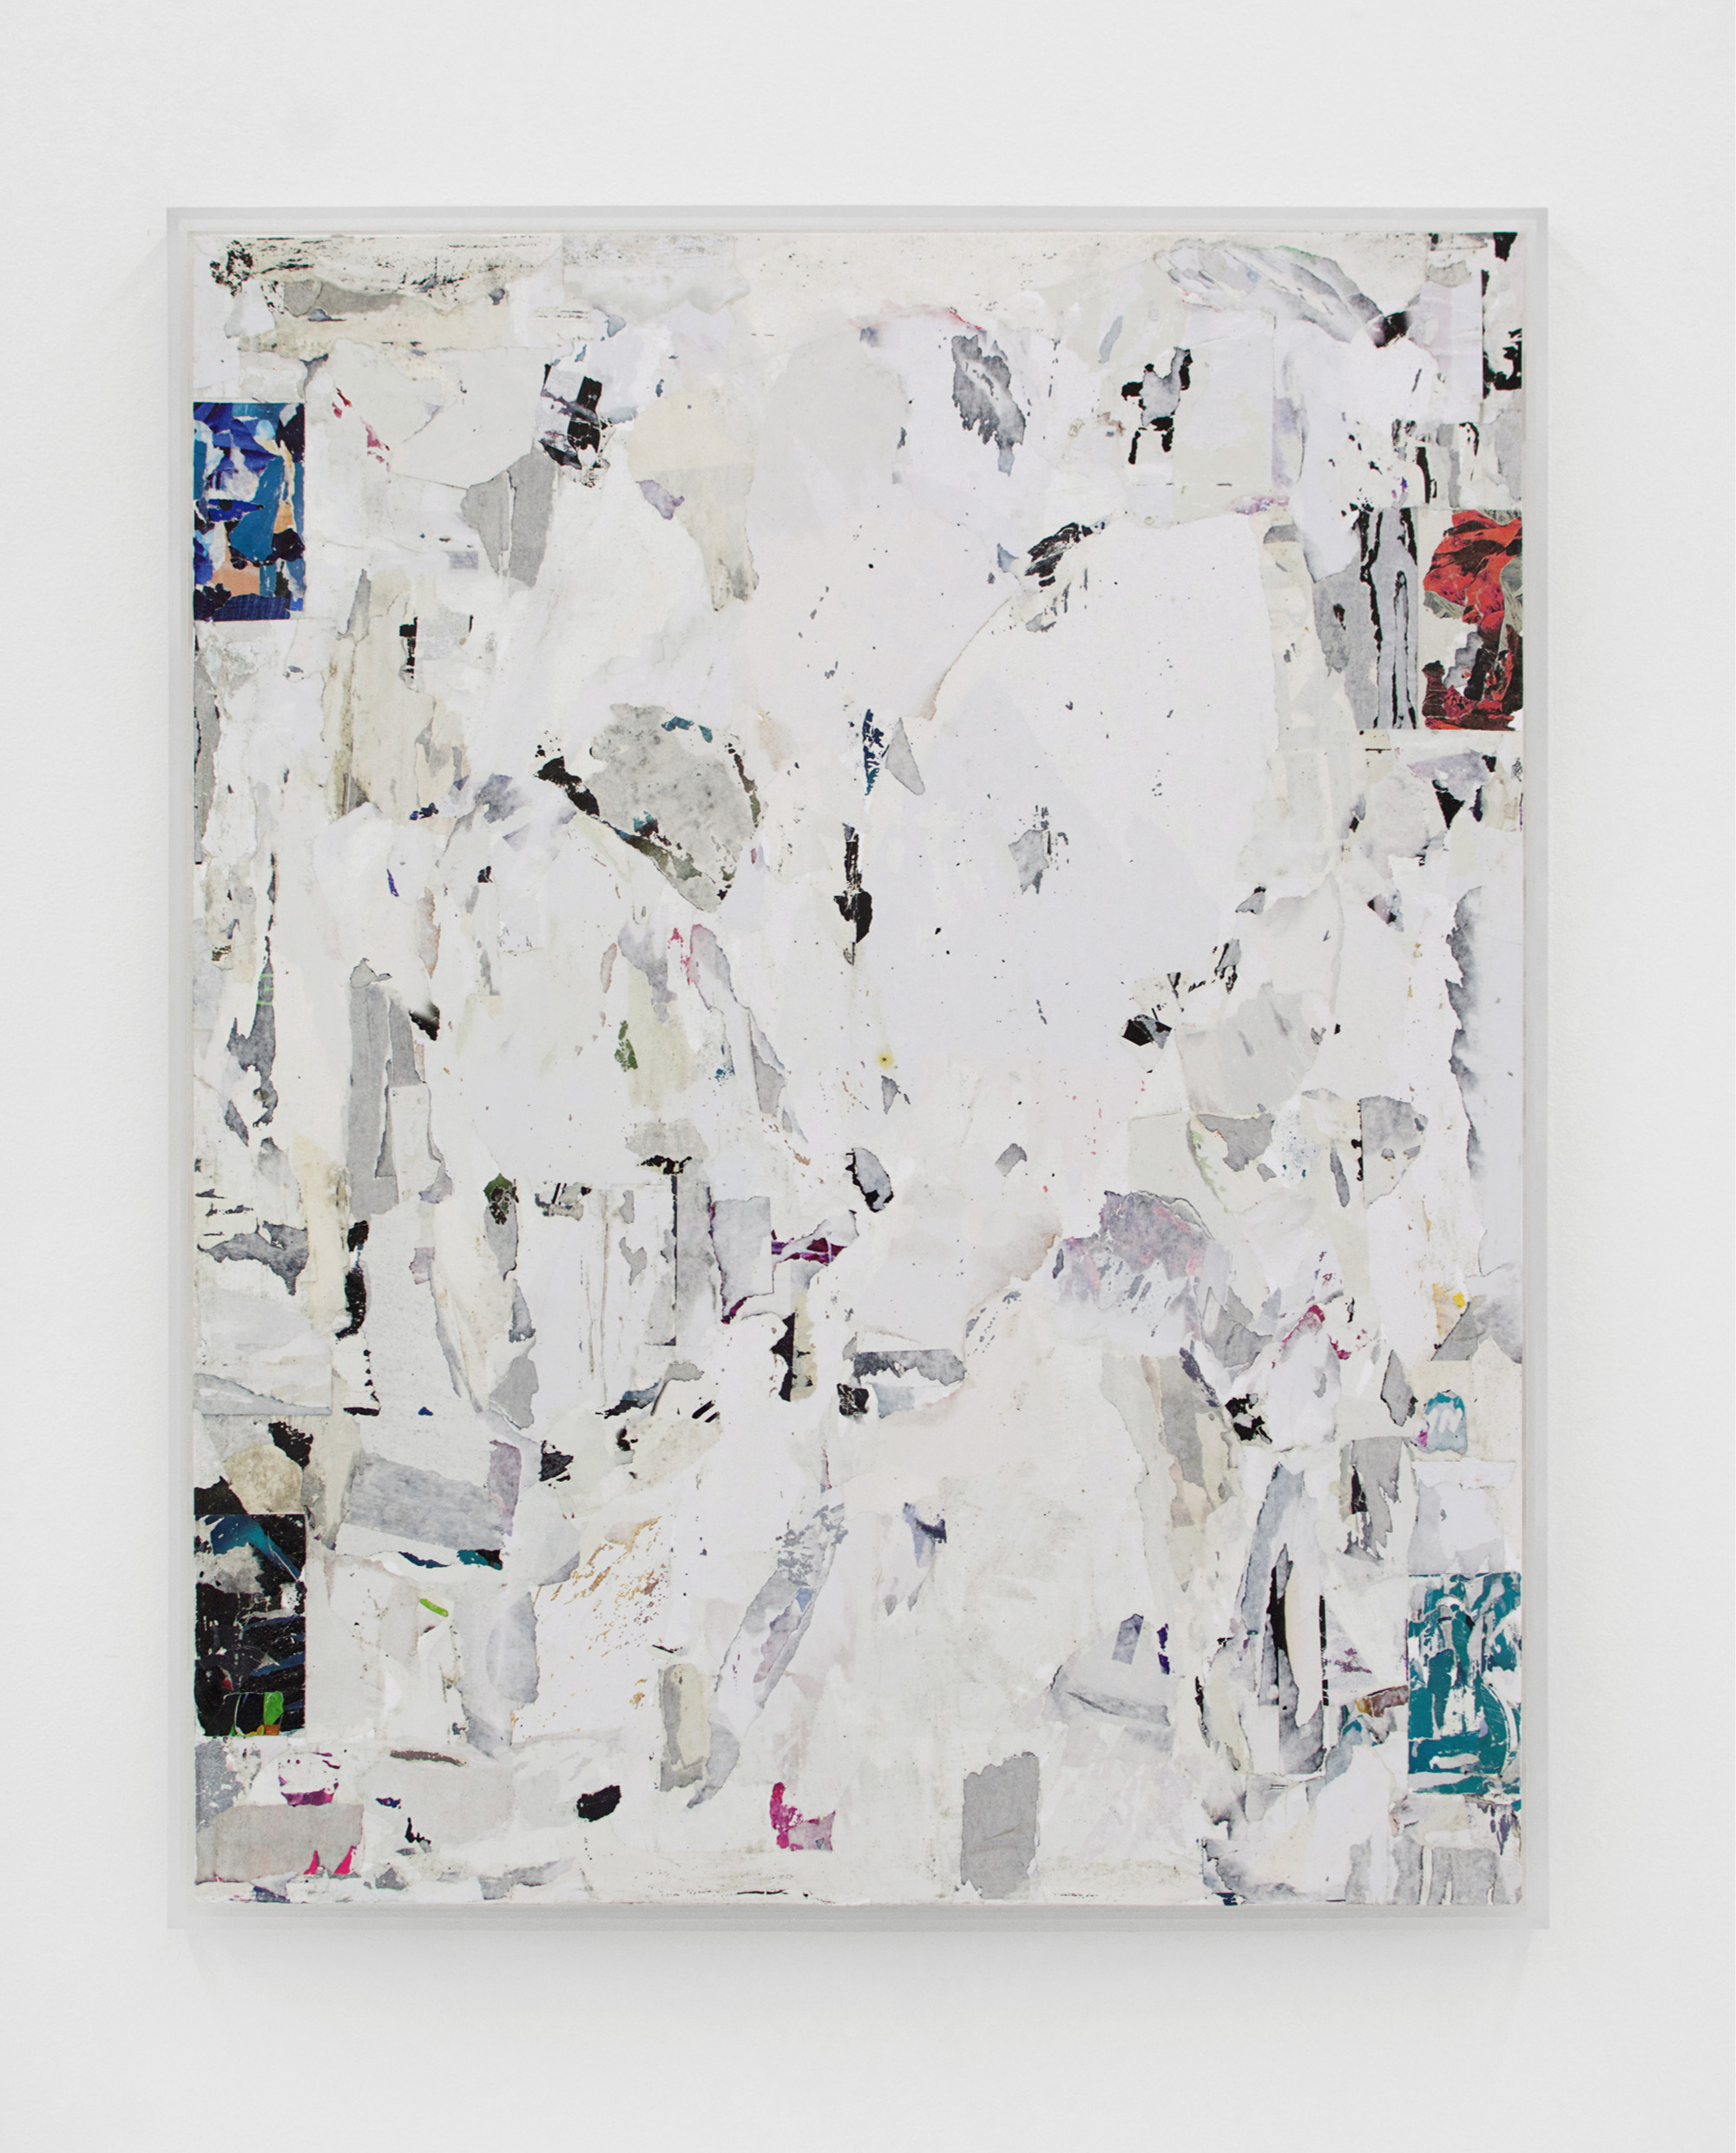 ANDREW LAUMANN   Untitled (Joker), 2016 , Acrylic paint, methylcellulose, paper, on panel in acrylic frame